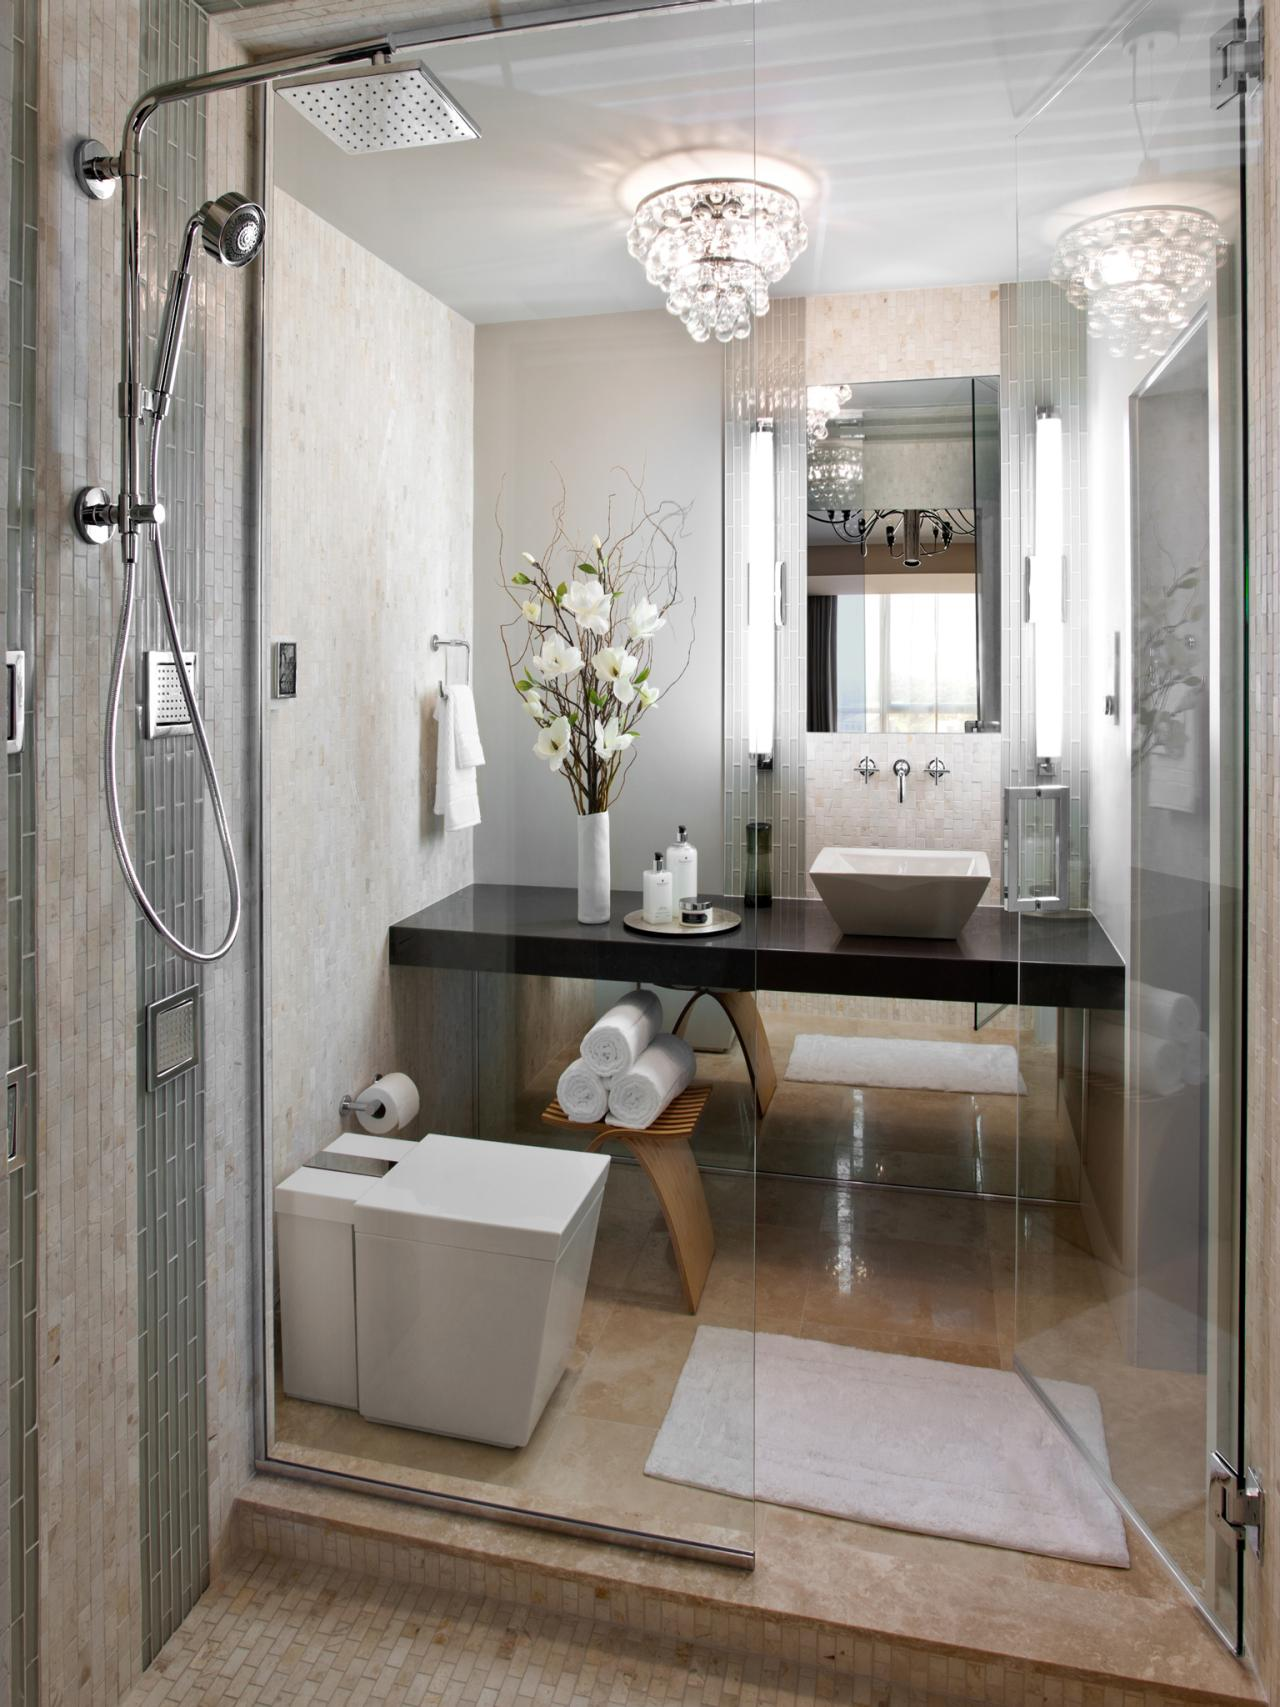 A sleek space with furnishings pared down the master for Modern small bathroom designs 2013